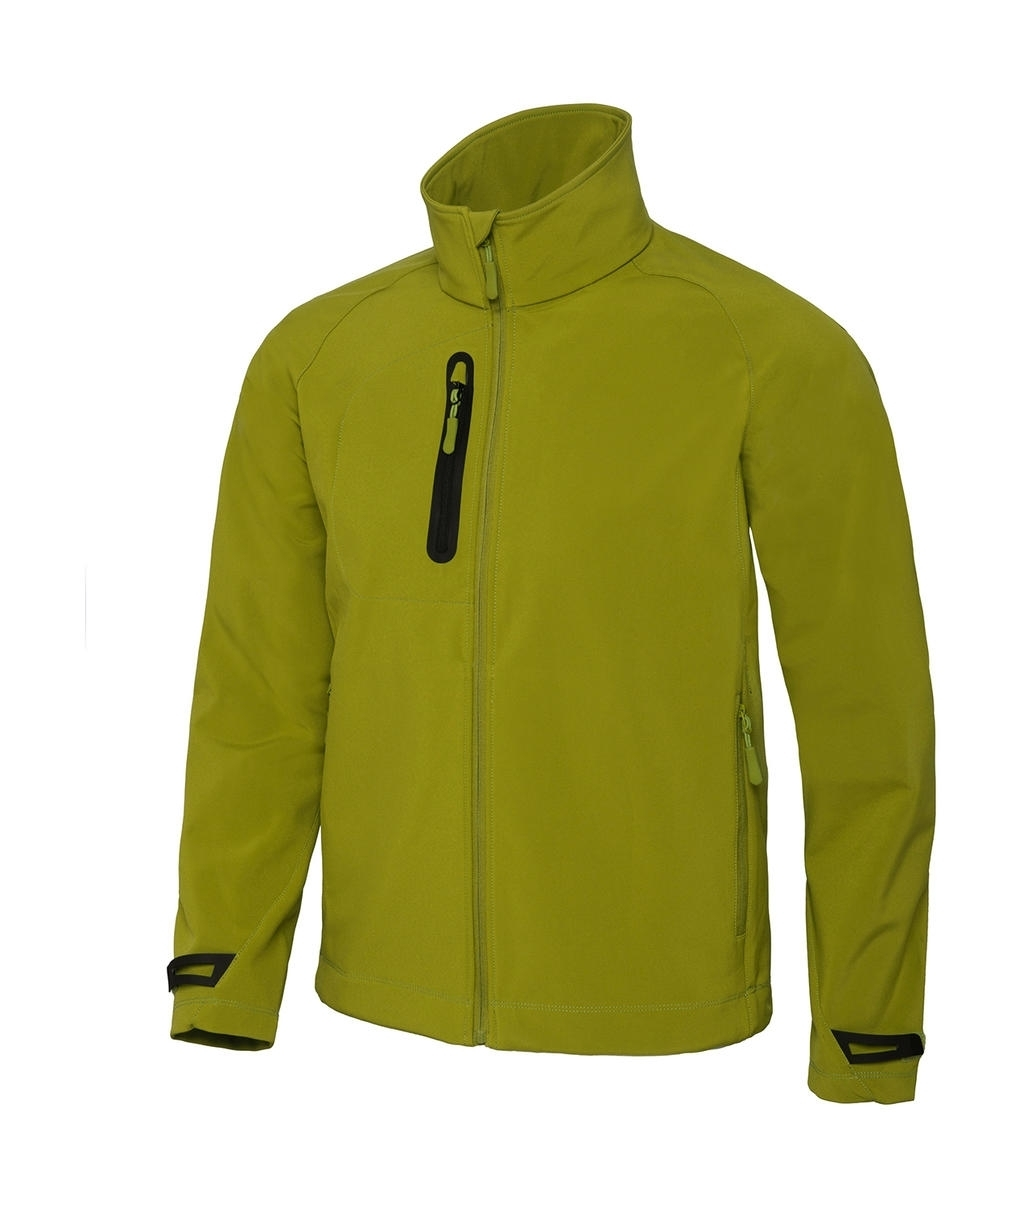 Men Technical Softshell Jacket - JM951 Green Moss Vert